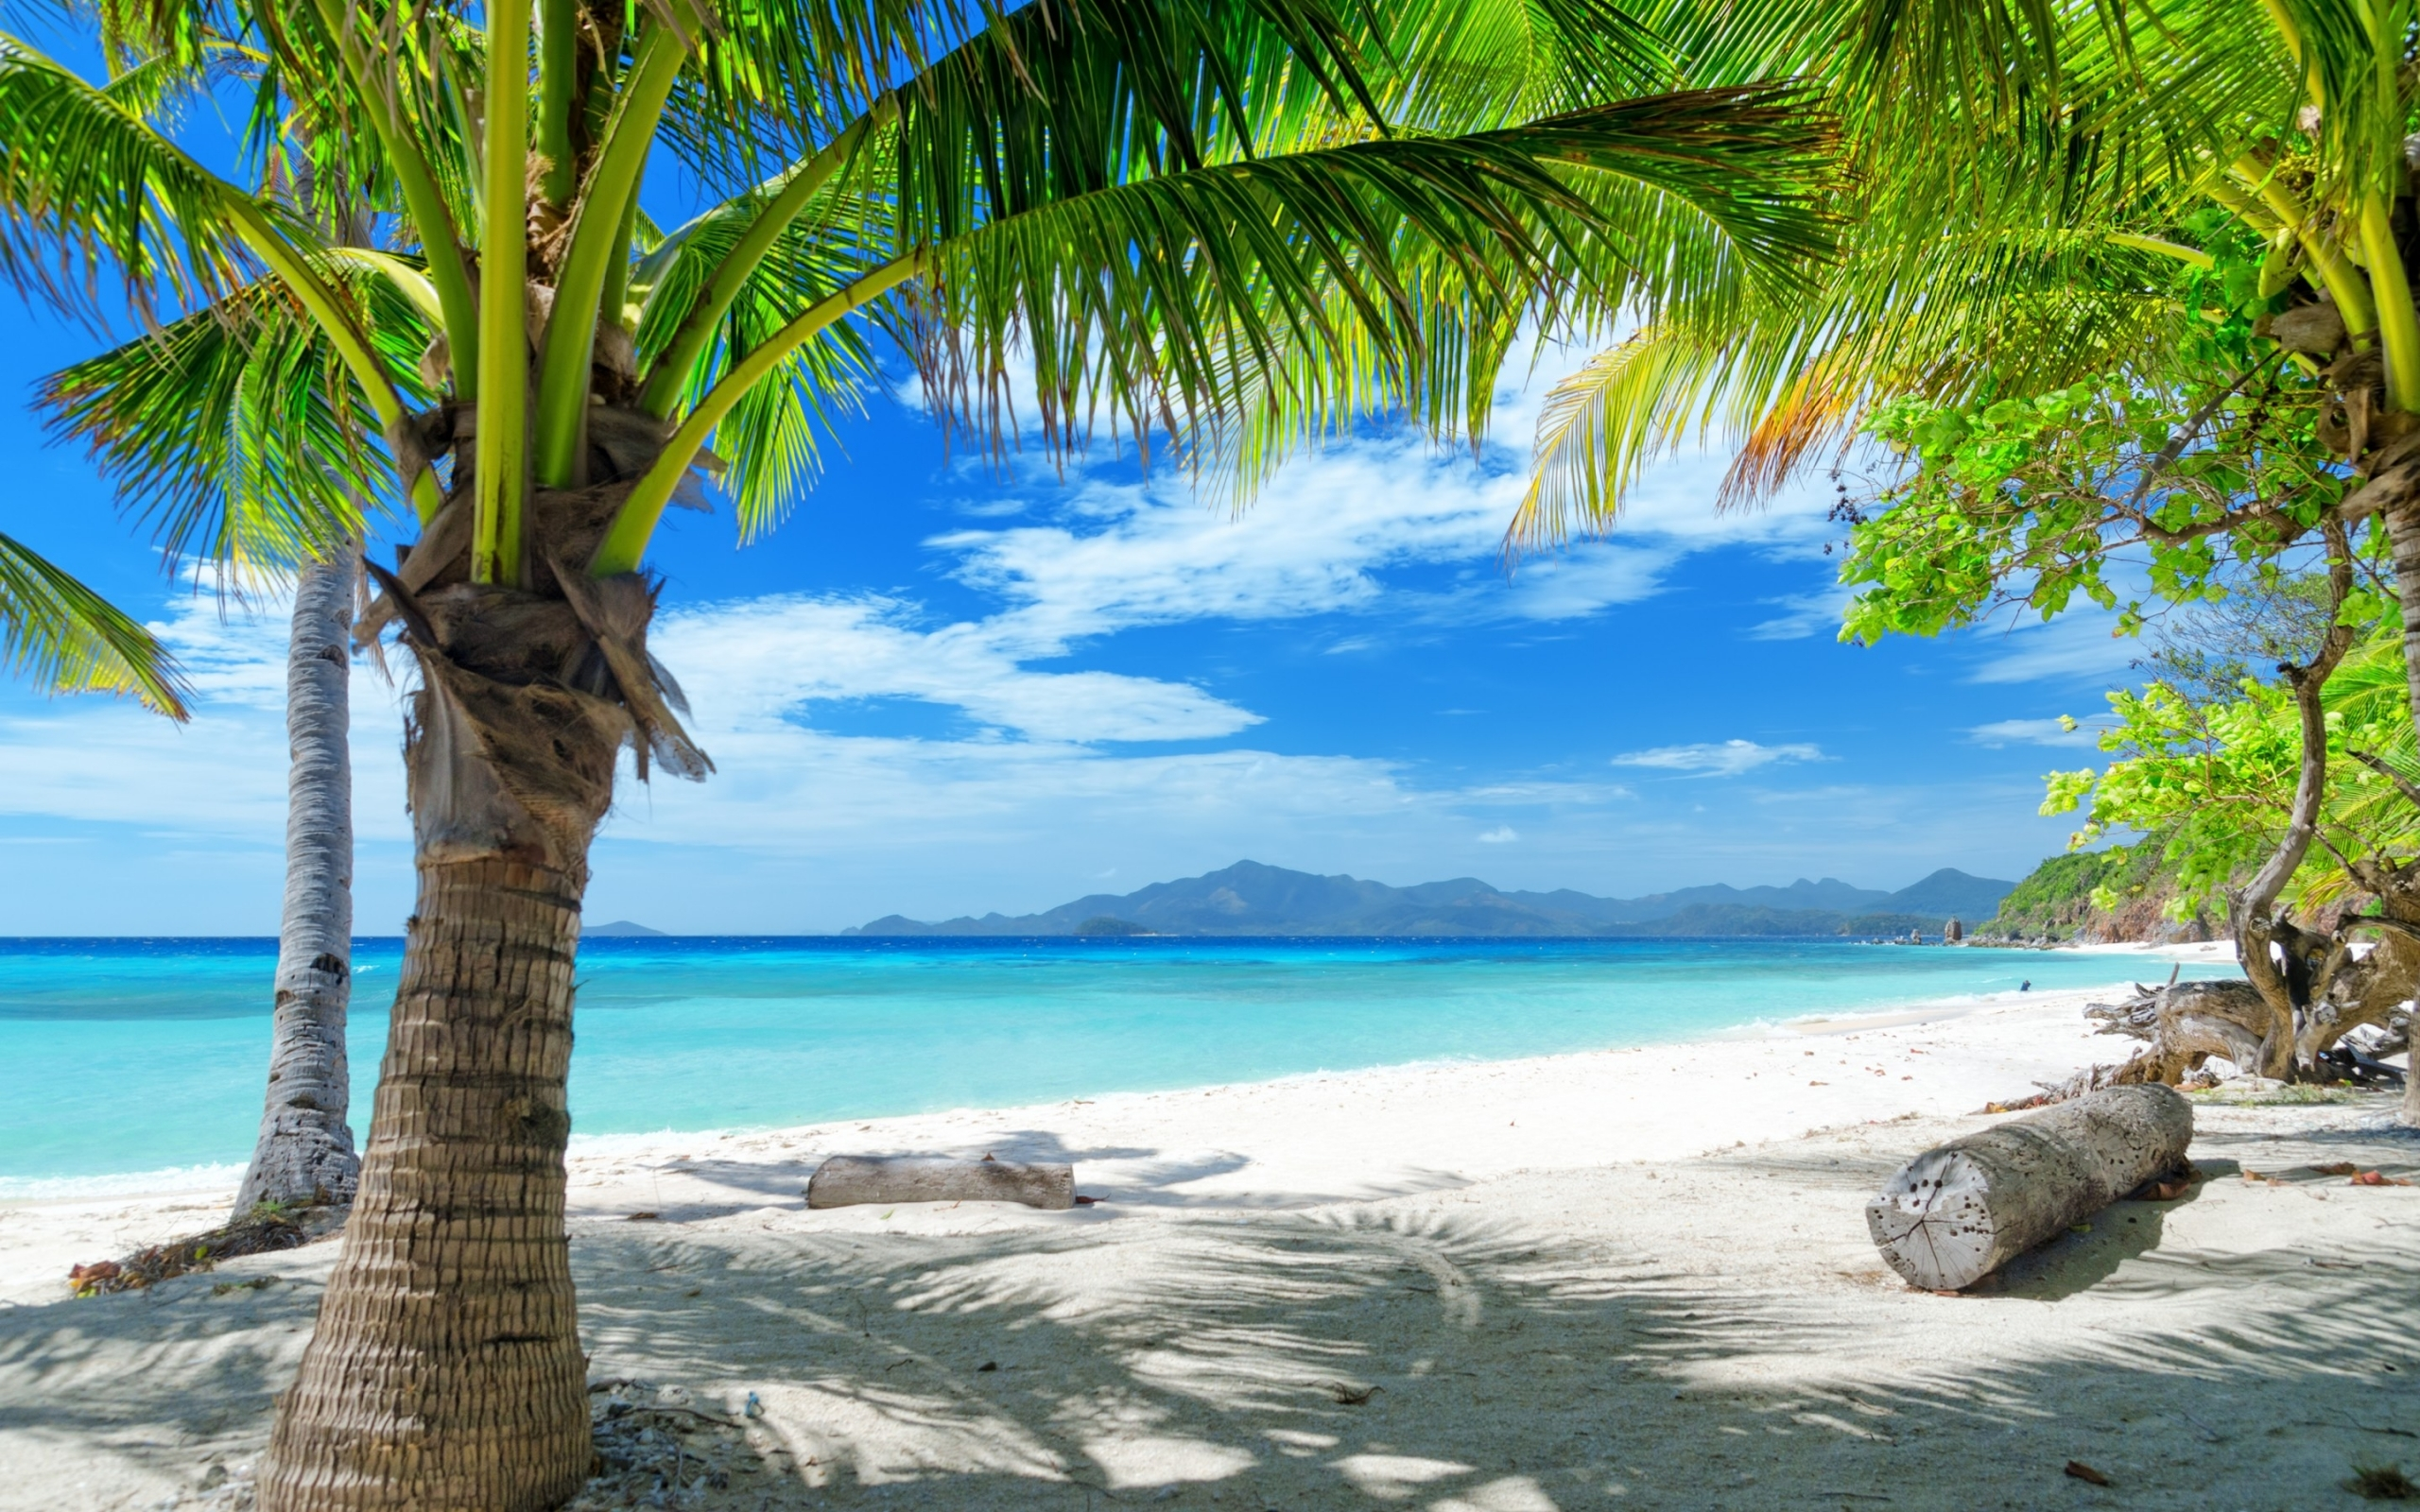 Palm Trees On The Beach: Palm Tree Beaches Wallpapers